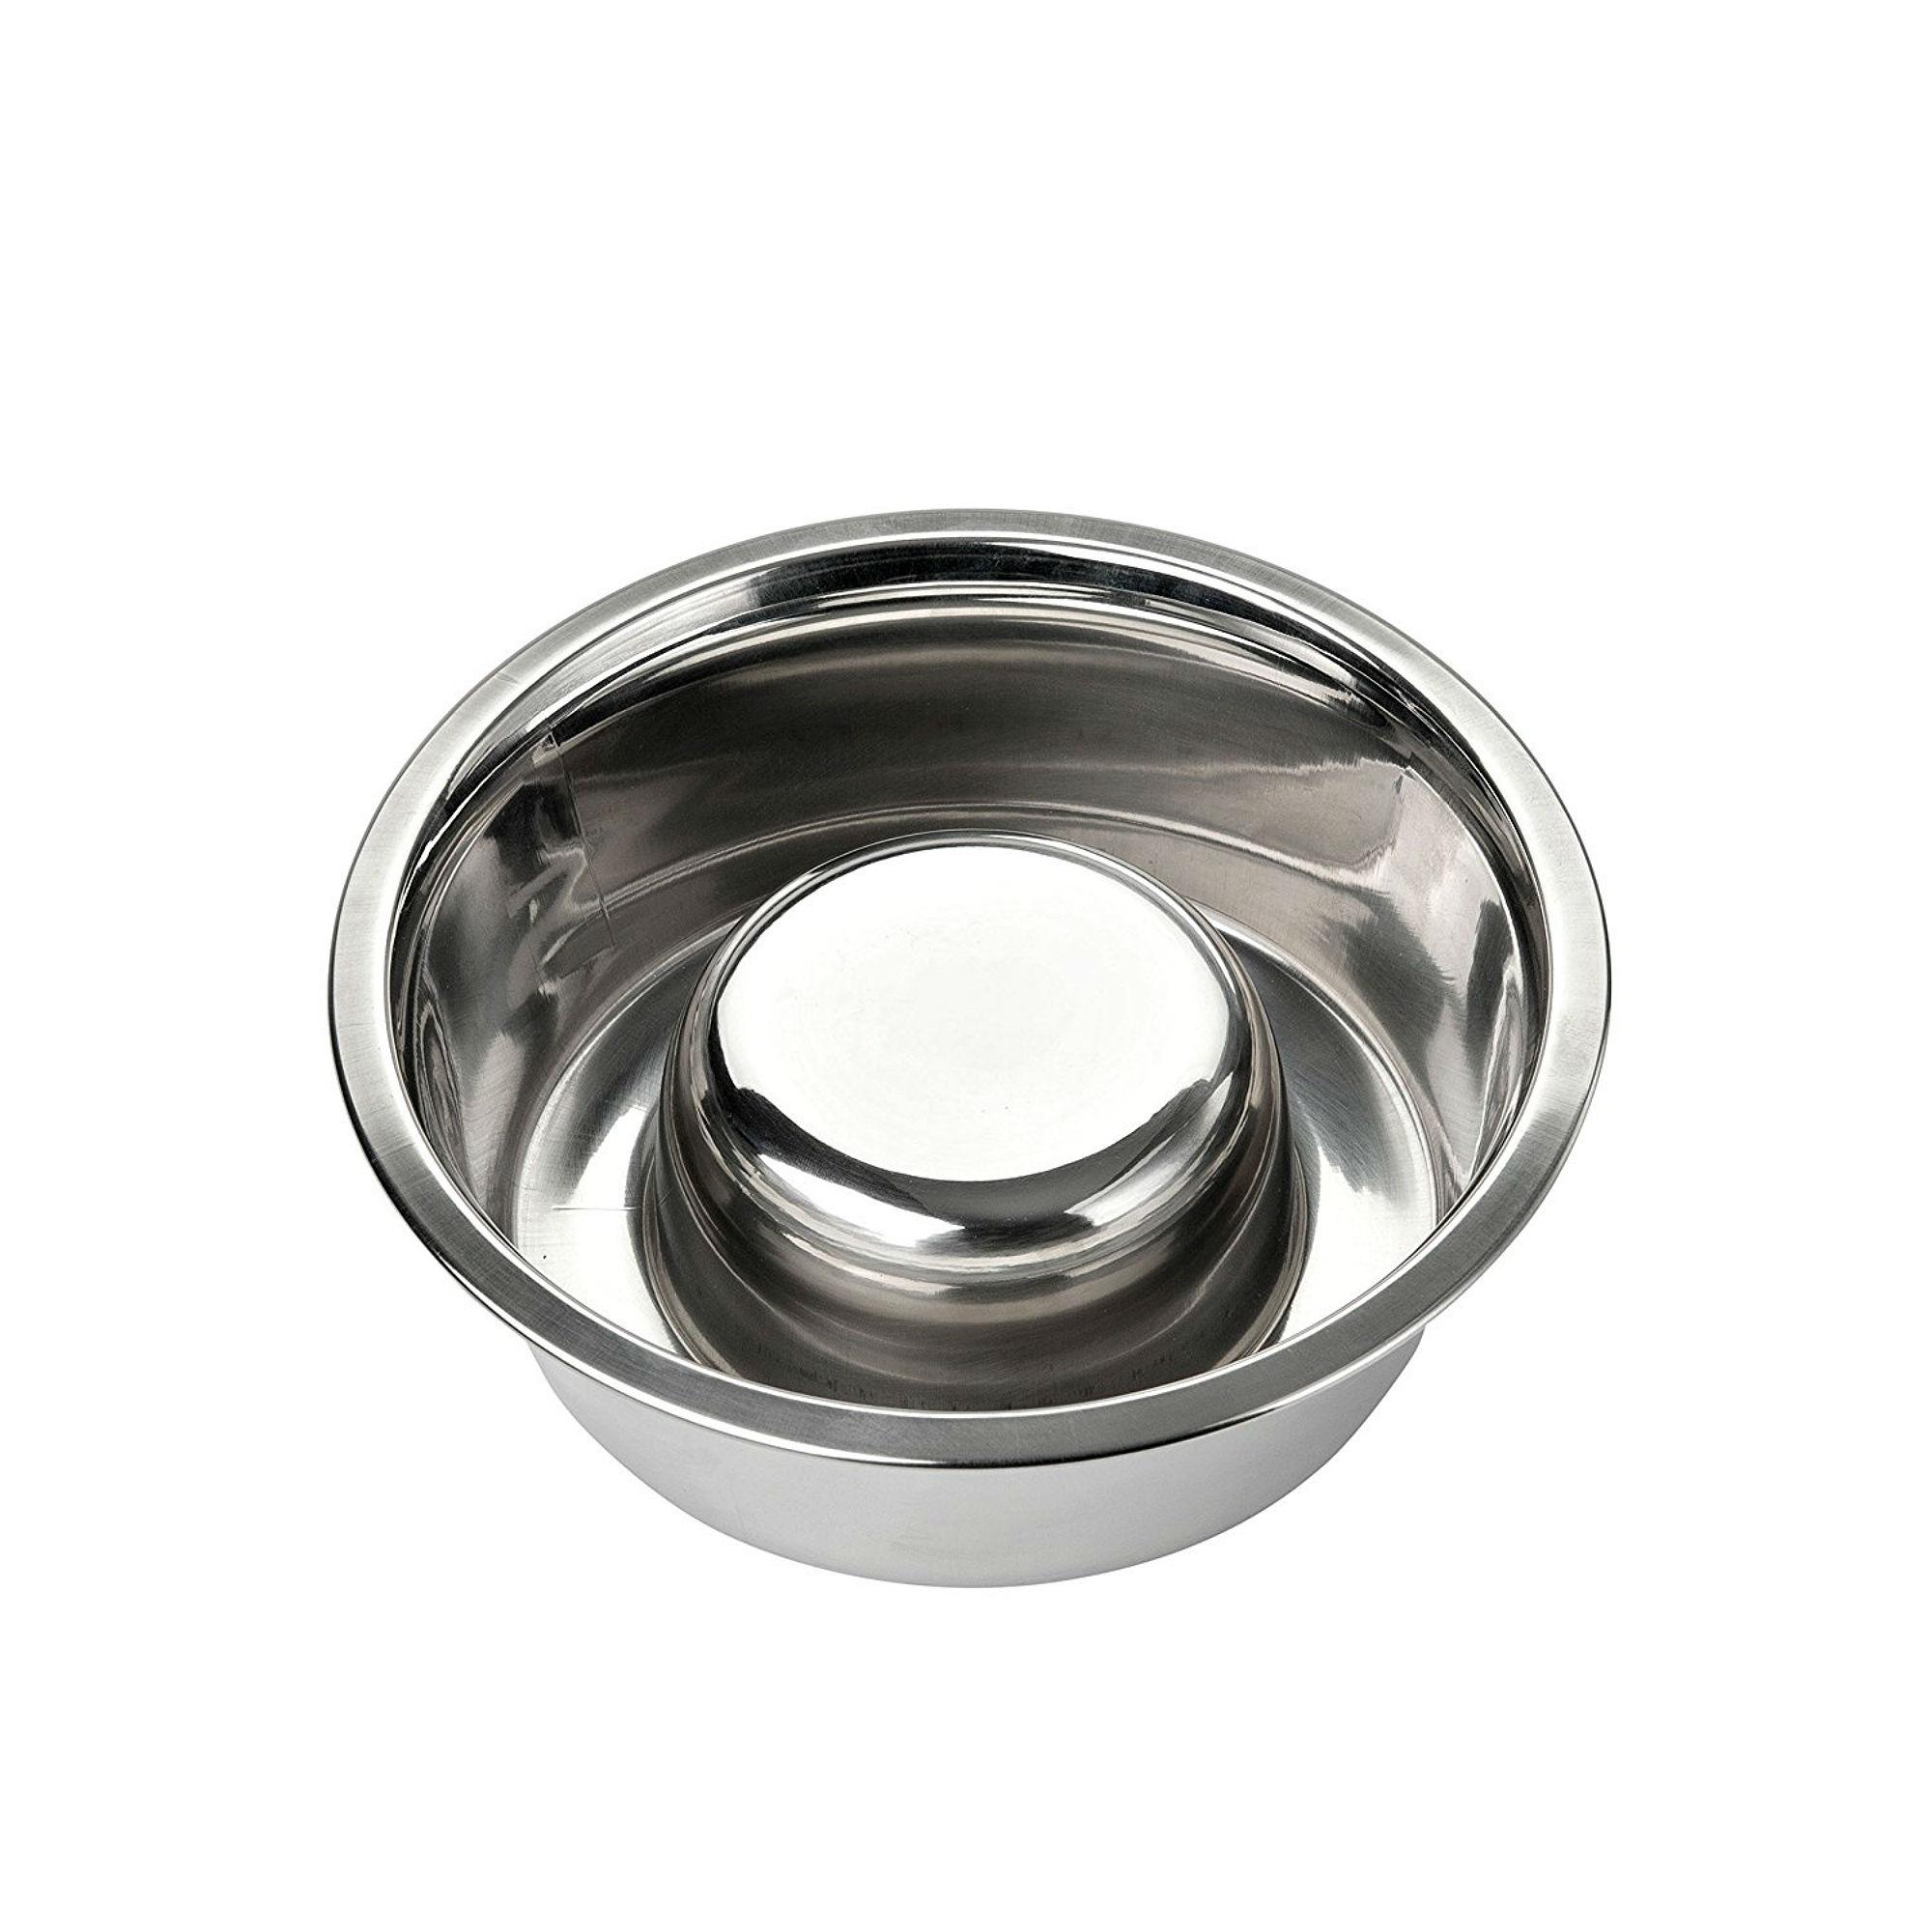 products dogs dog feeder small bowls sml food usa stainless for in steel pet bowl pack basis slow made